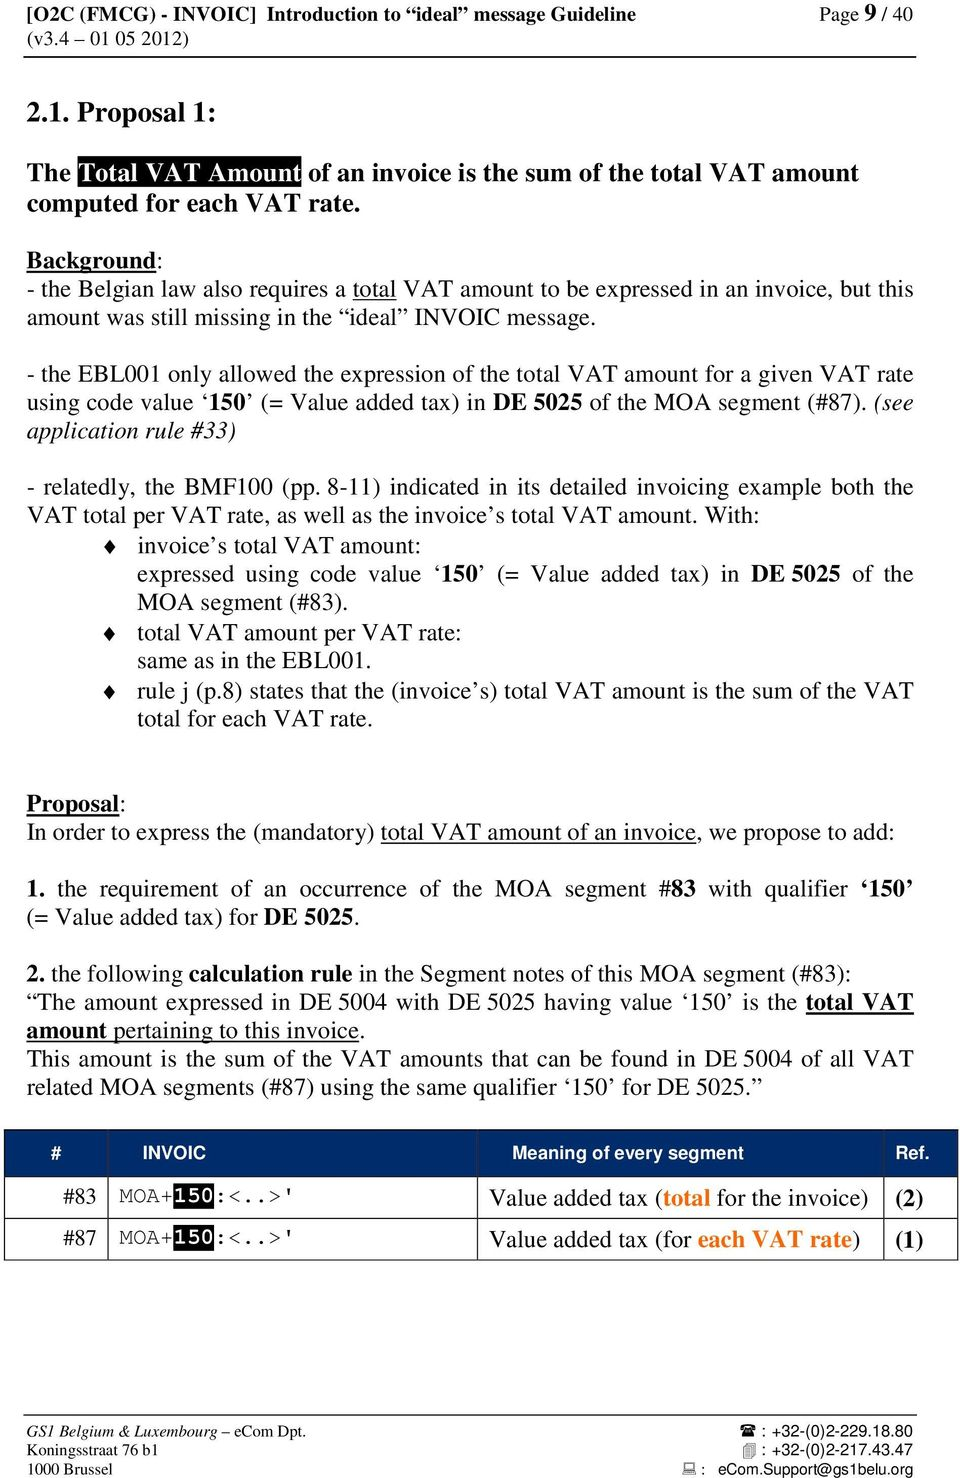 - the EBL001 only allowed the expression of the total VAT amount for a given VAT rate using code value 150 (= Value added tax) in DE 5025 of the MOA segment (#87).